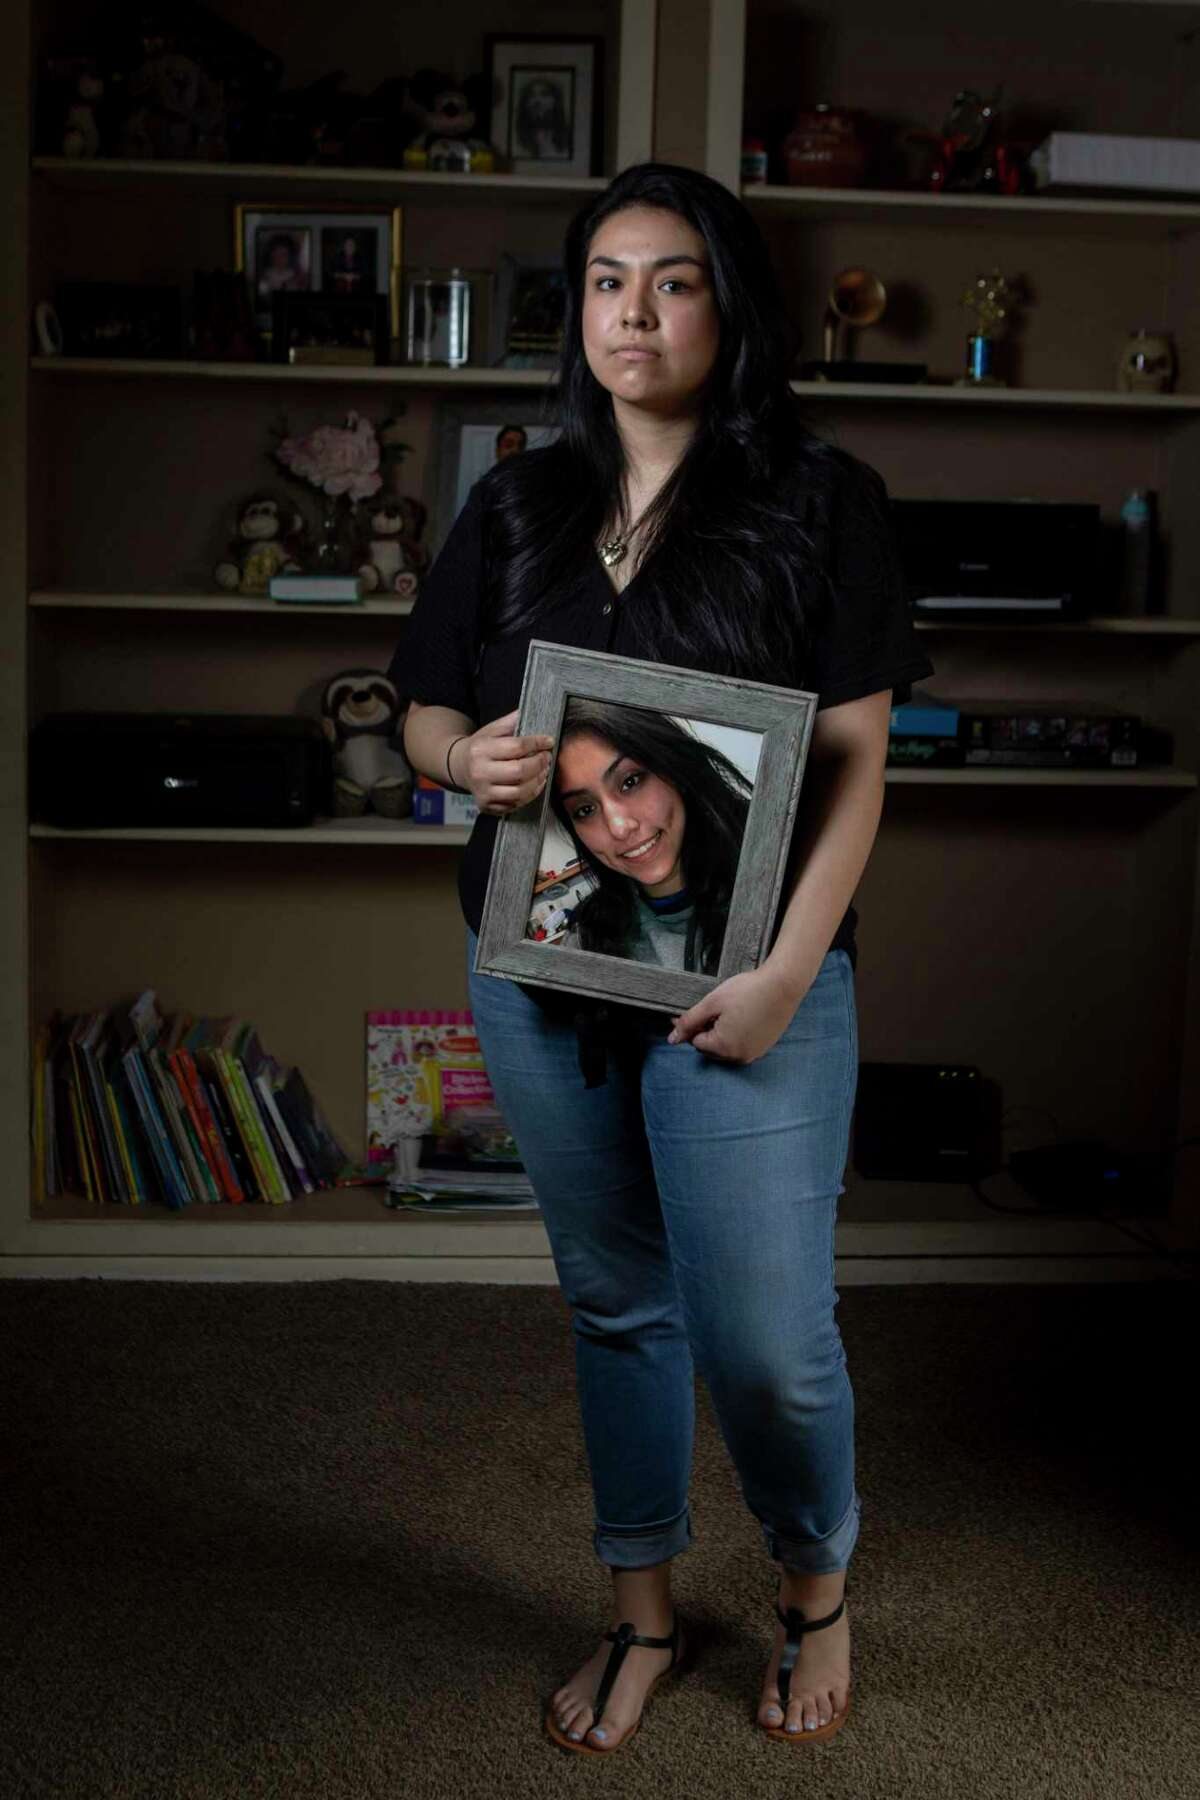 Destiny Herrera died in a 2019 car accident, a year before her foster dad Miguel Briseno is set to appear in court on charges of sexual assault. Herrera's older sister, Faith, holds her photo.